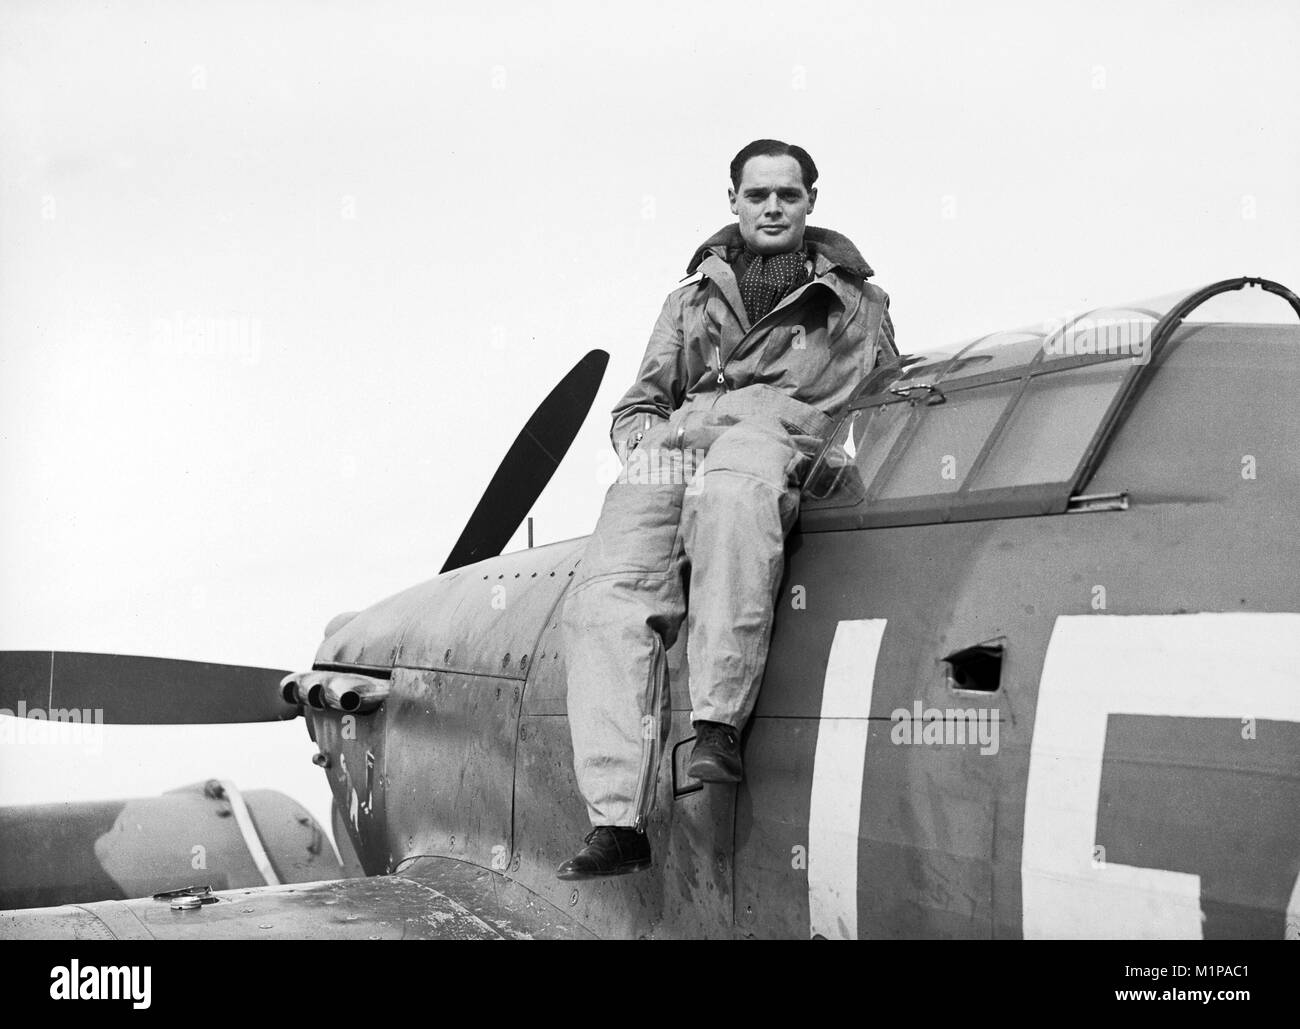 Group Captain Sir Douglas Robert Steuart Bader, (1910 – 1982) Royal Air Force flying ace during the Second World - Stock Image